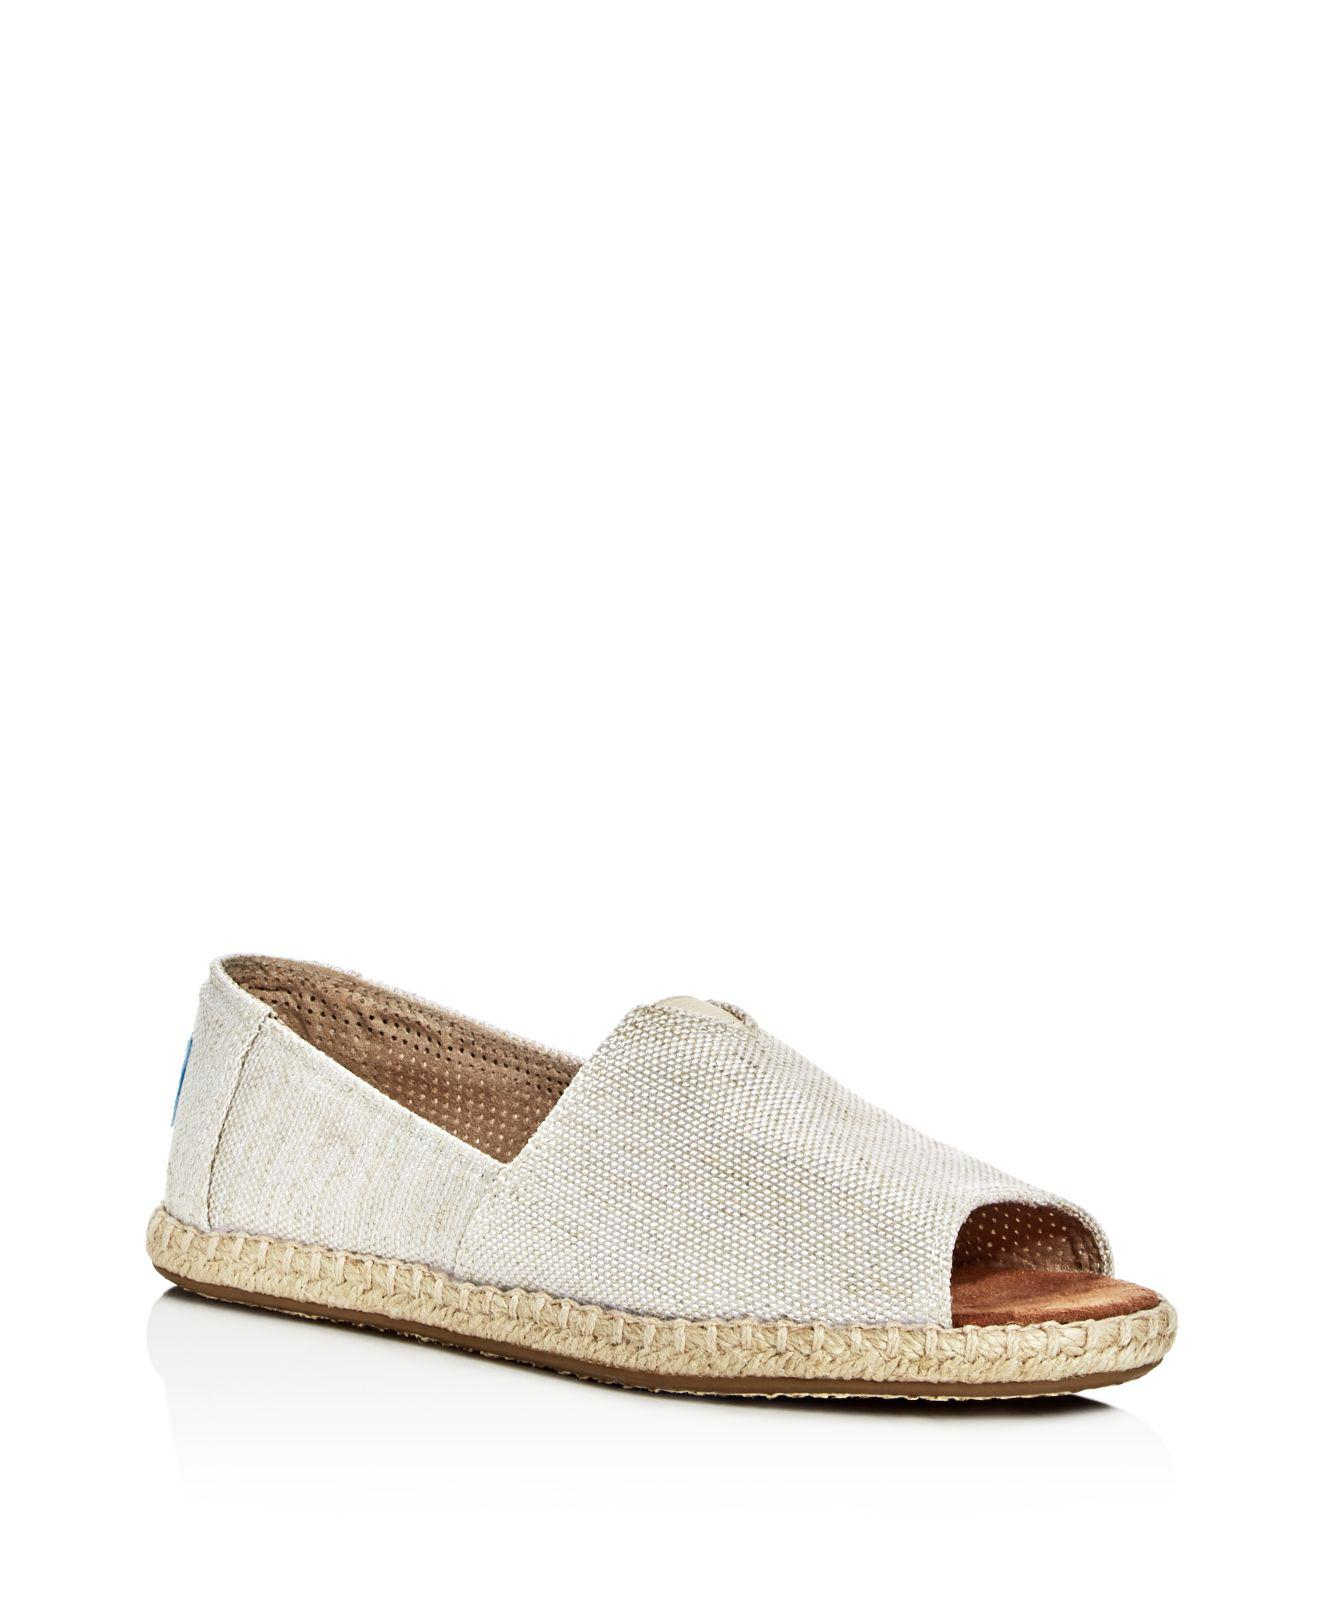 ff03763a77b Lyst - TOMS Women's Alpargata Open Toe Espadrille Flats in Natural